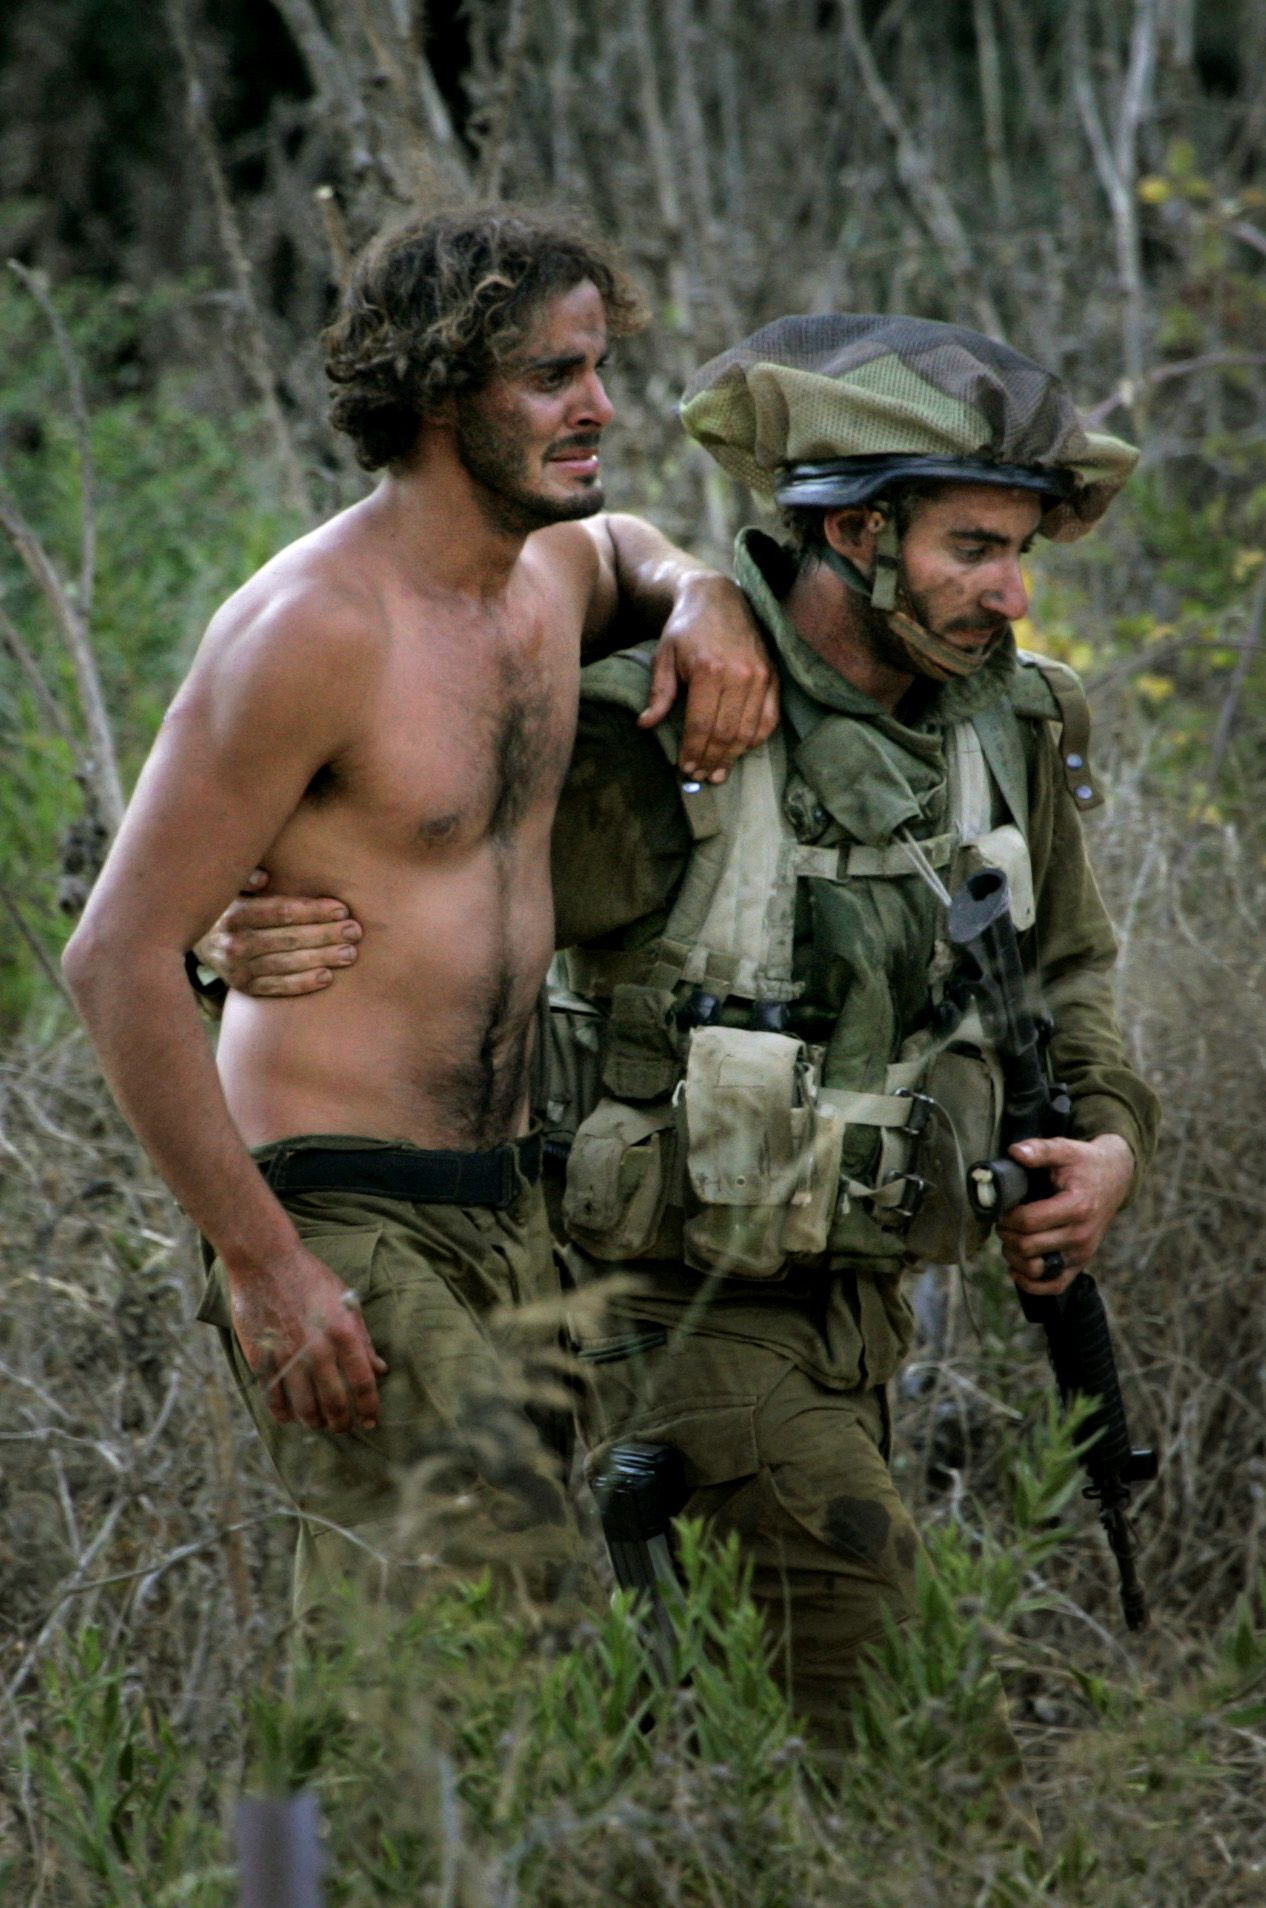 Van opschorting van het offensief was gisteren niets te merken. Foto AP An Israeli soldier helps a wounded comrade to a waiting ambulance after crossing the border from Lebanon into northern Israel, Wednesday, Aug. 9, 2006. Al-Jazeera Television said 11 Israeli soldiers were killed in heavy fighting with Hezbollah guerrillas near the border Wednesday. The Israeli army declined to comment on the report but had said earlier that 15 soldiers were wounded in overnight clashes. (AP Photo/Jacob Silberberg)